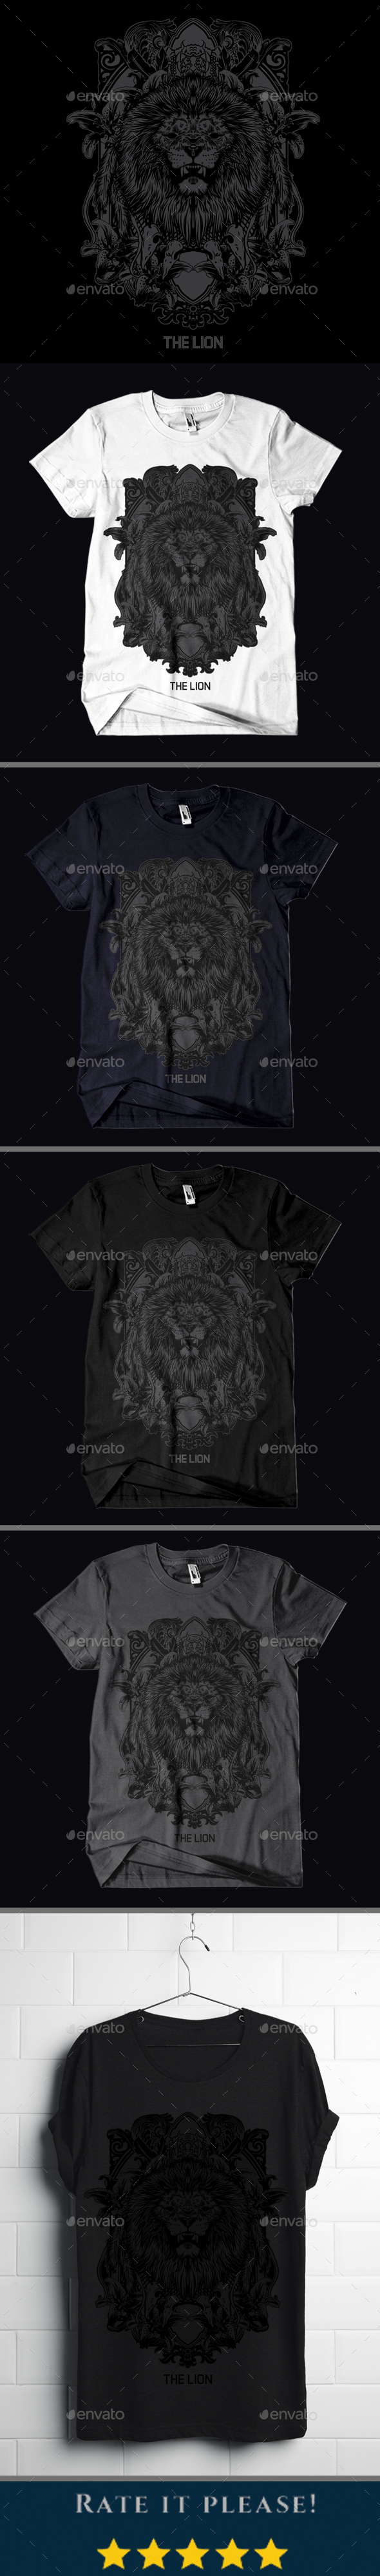 The Lion T-shirt Design - Designs T-Shirts